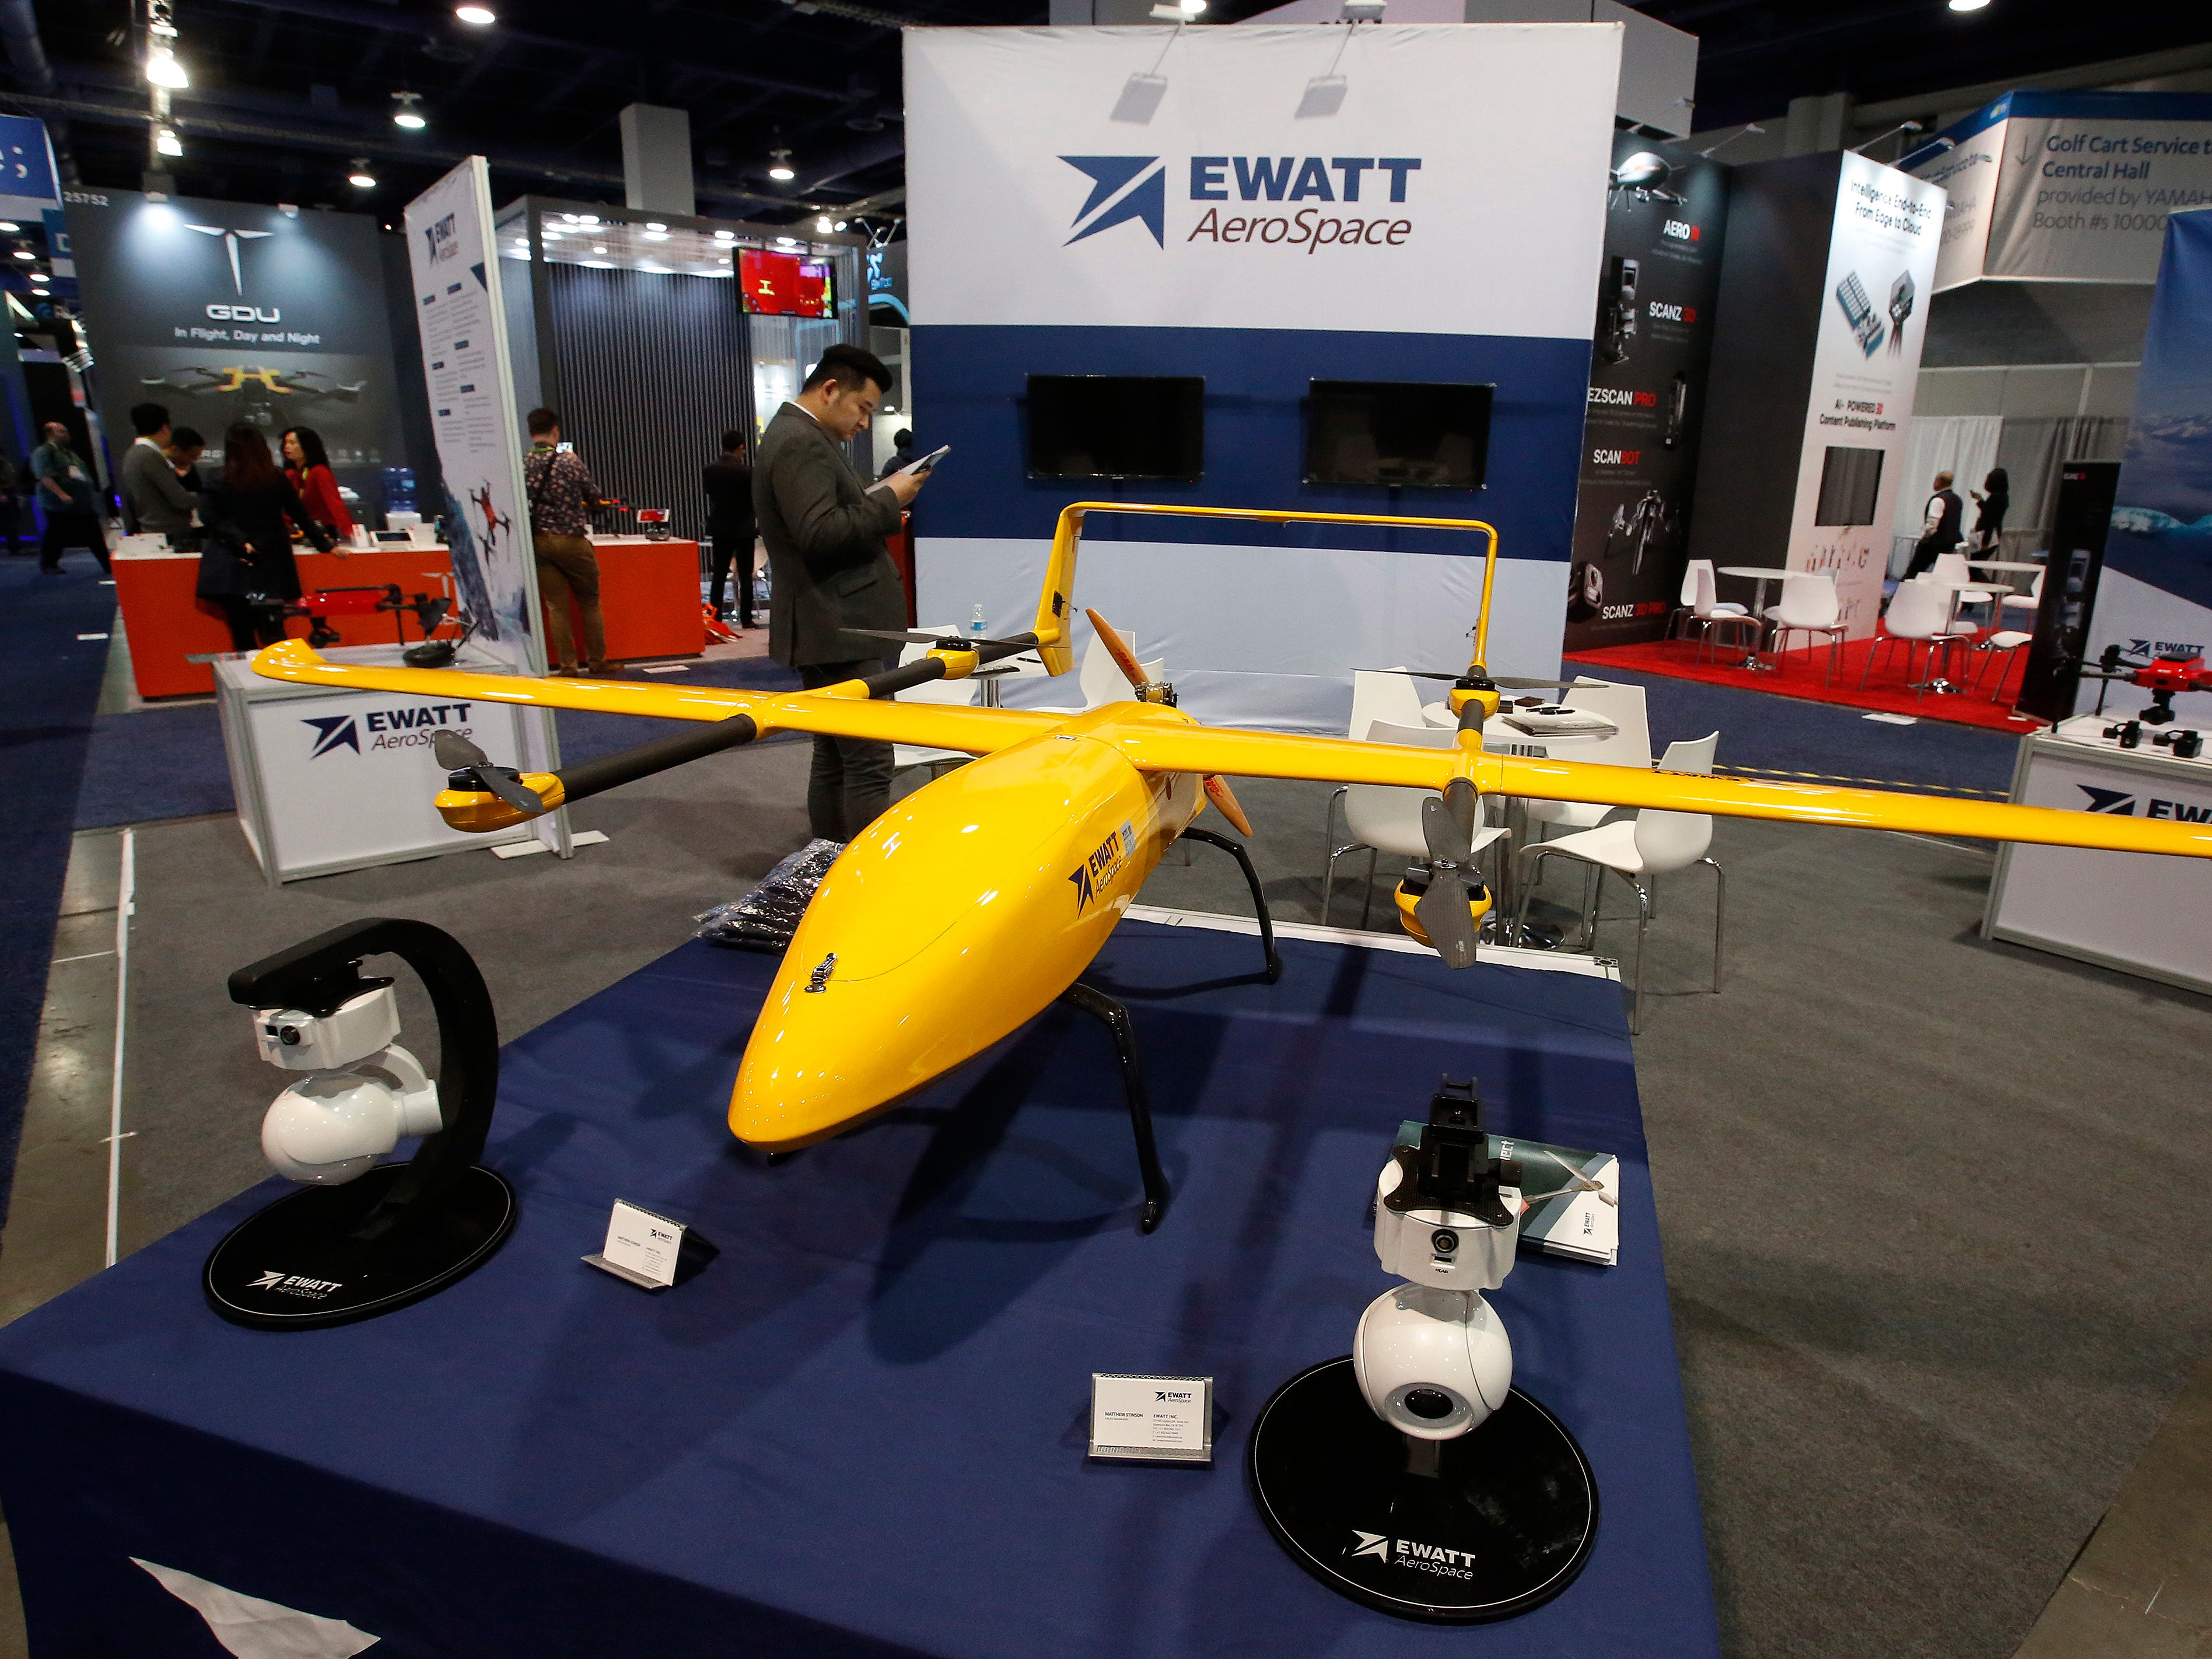 A drone sits on display at the Ewatt AeroSpace booth.